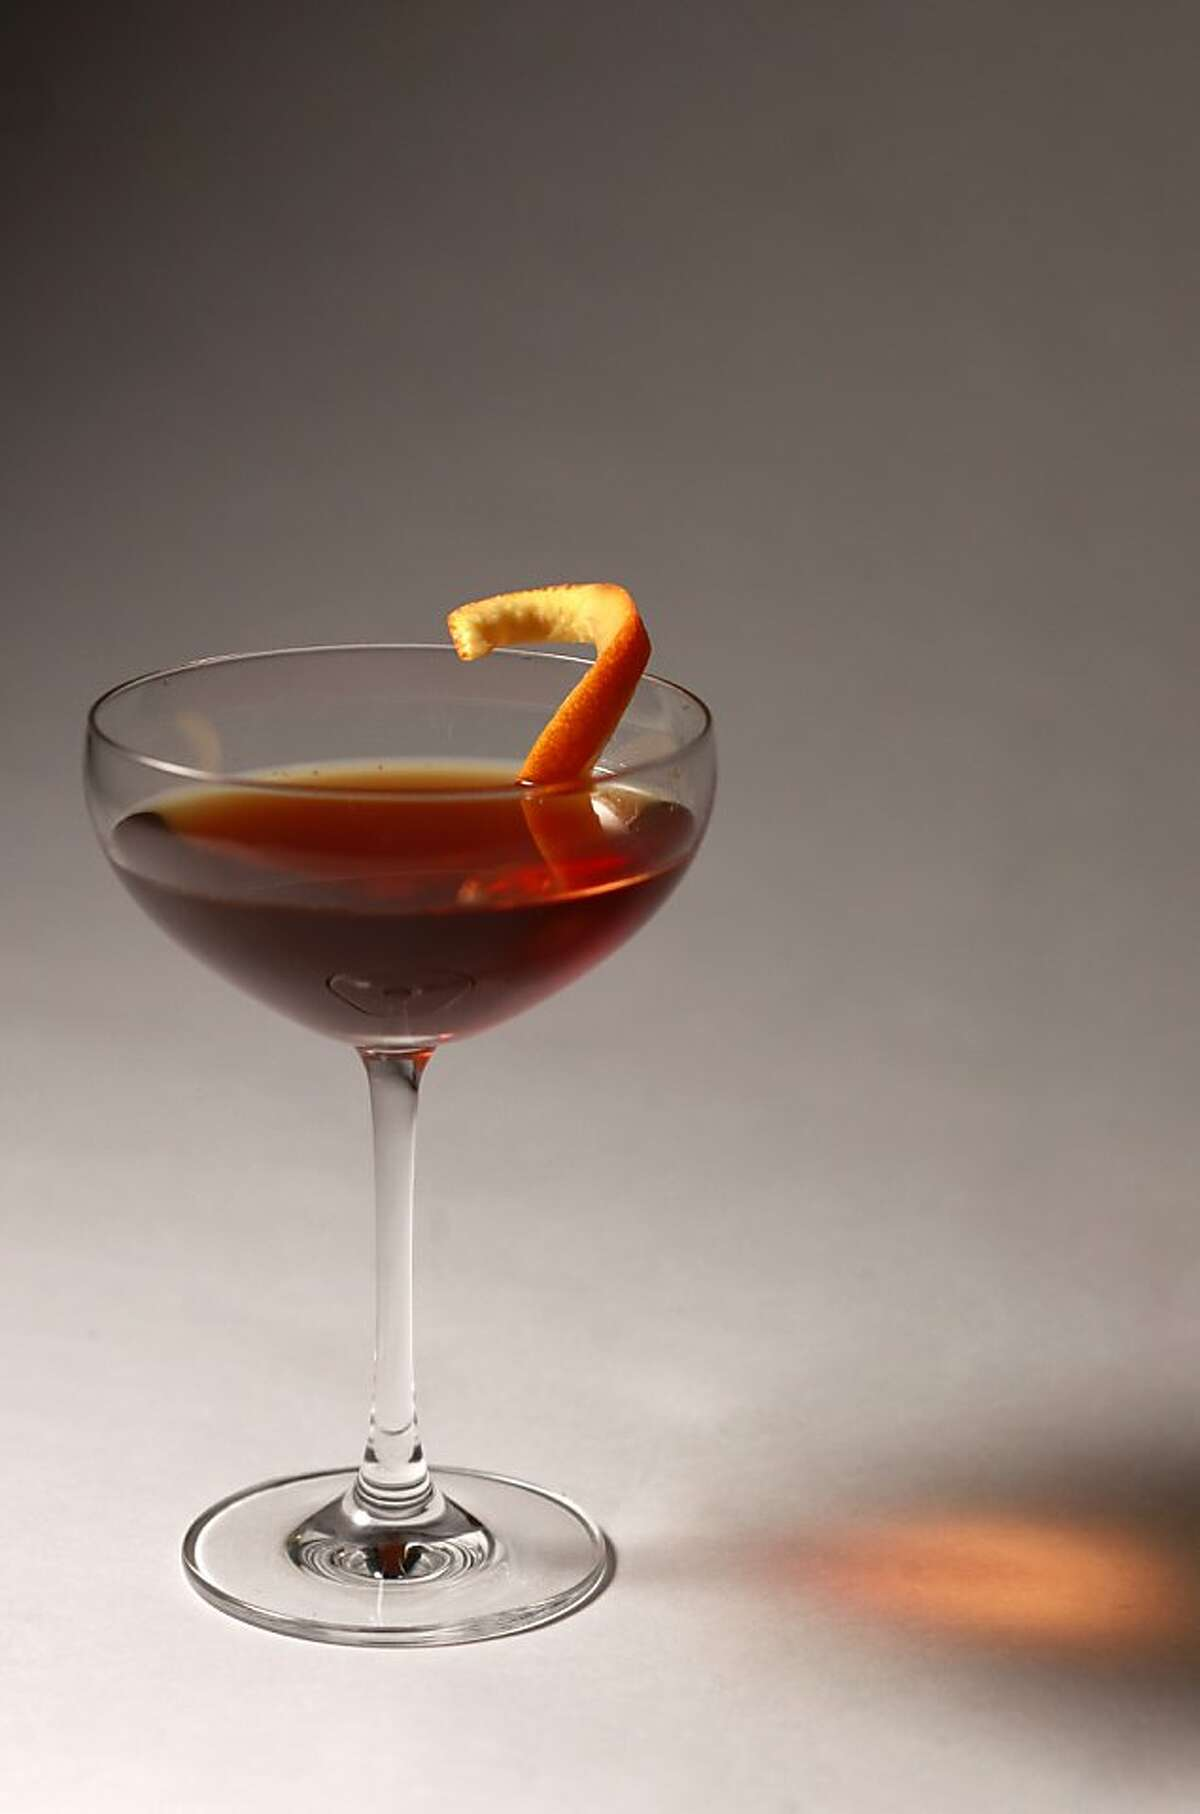 2. Classic Manhattan - 2 1/2 oz. rye whiskey (bourbon can substitute) - 3/4 oz. sweet vermouth - dash of Angostura bitters - 1 maraschino cherry (or lemon or orange peel as garnish) Pour the bourbon and sweet vermouth in a cocktail shaker with ice. Add a dash of bitters. Stir or shake (your preference), then strain it all out into a martini glass. Add the maraschino cherry and sip away. Try soaking dried cherries in whiskey and leaving them in the fridge for a garnish. Or use lemon peel. Many other brands and flavors of bitters are available for different flavor profiles.